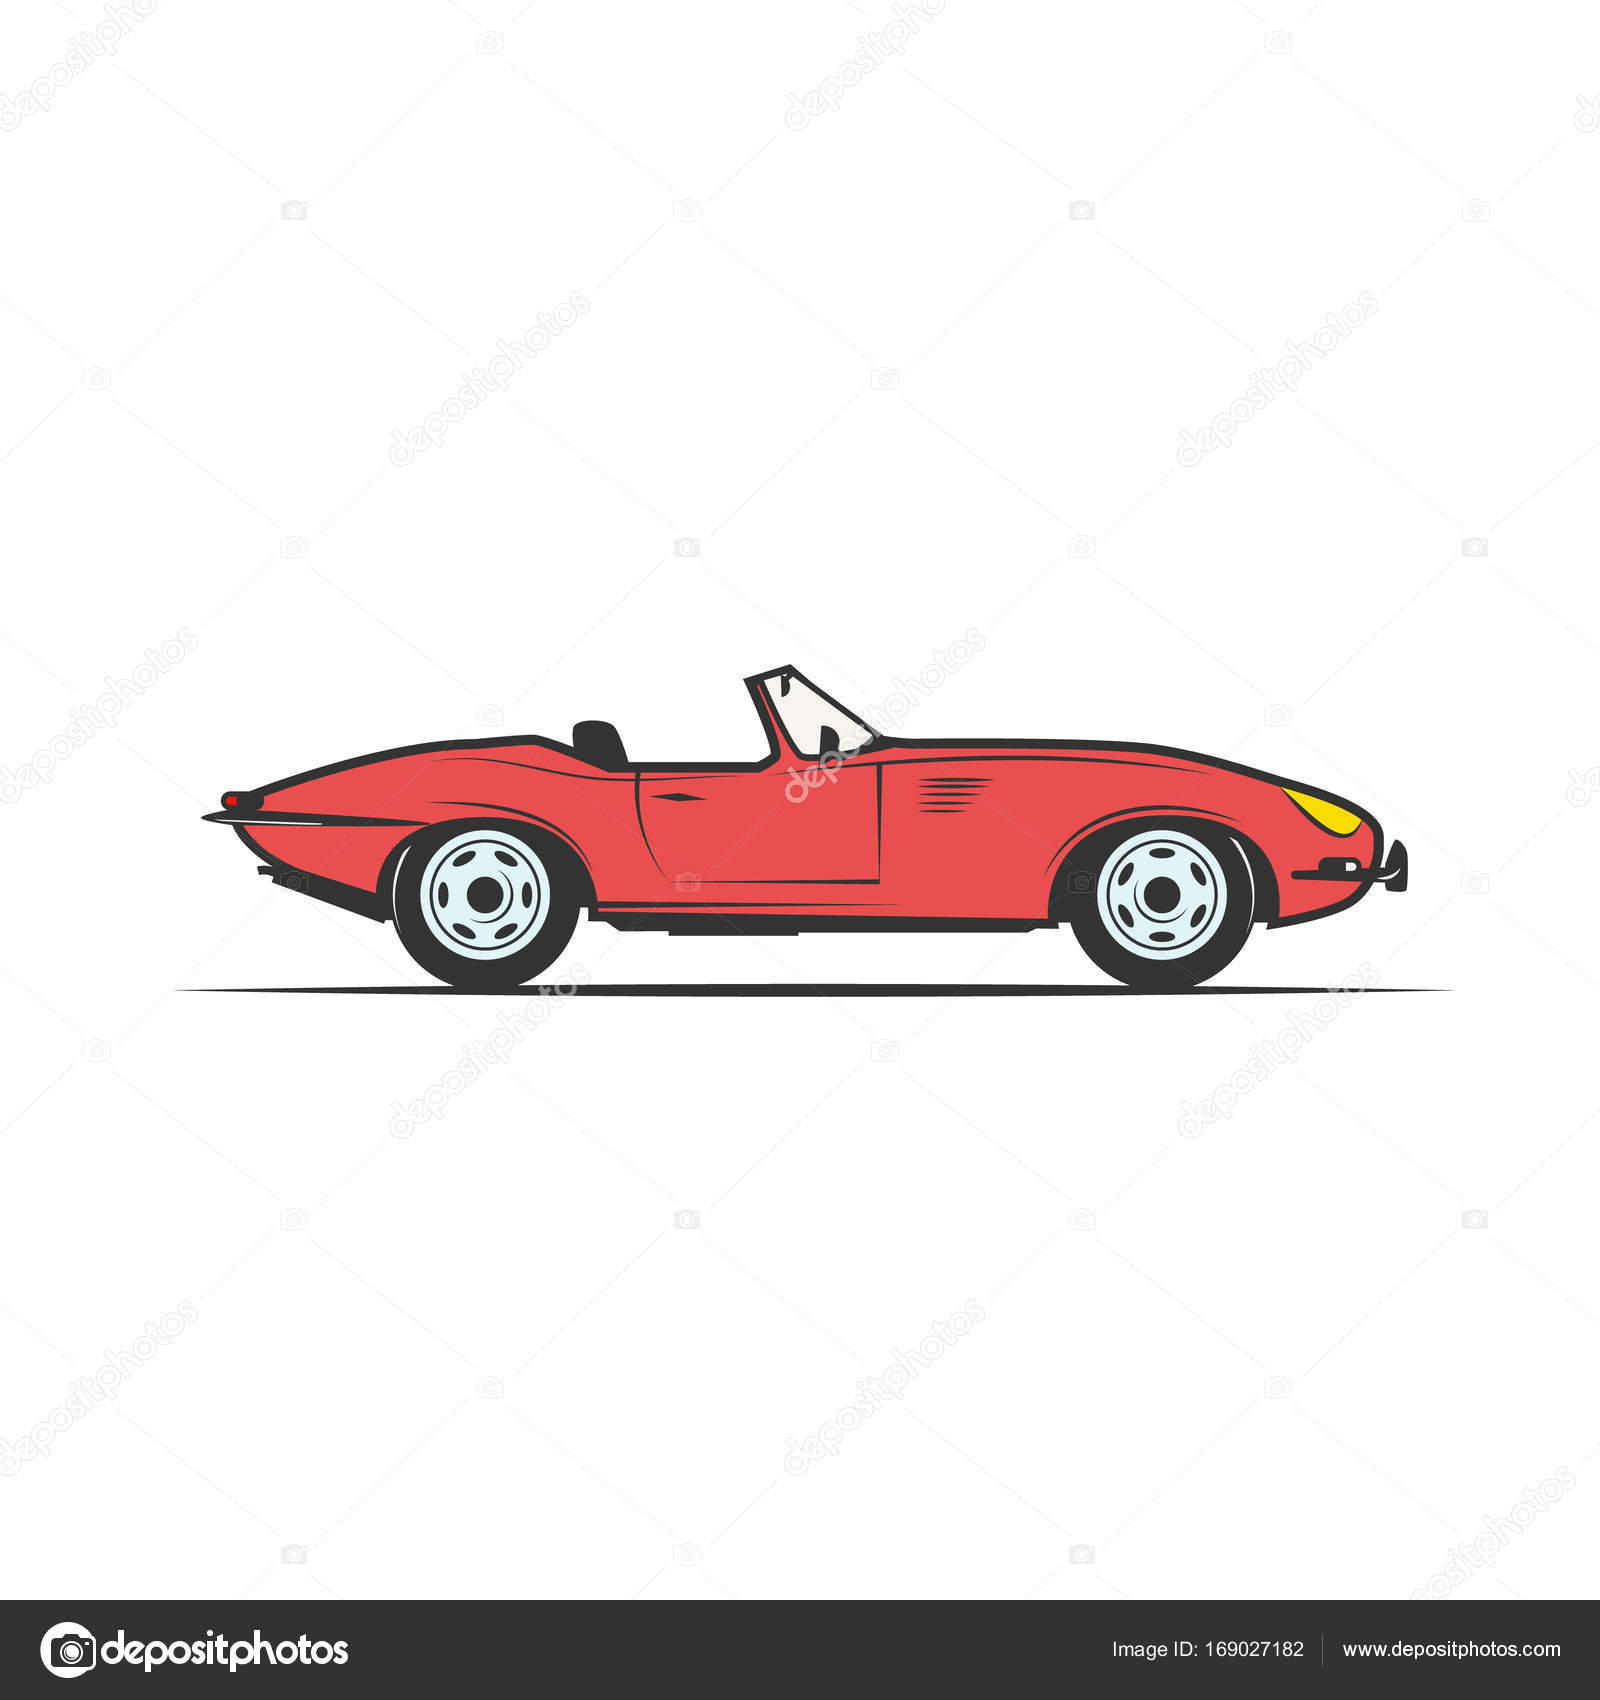 Clipart Red Convertible Red Cabriolet Vector Stock Vector C Chekky 169027182